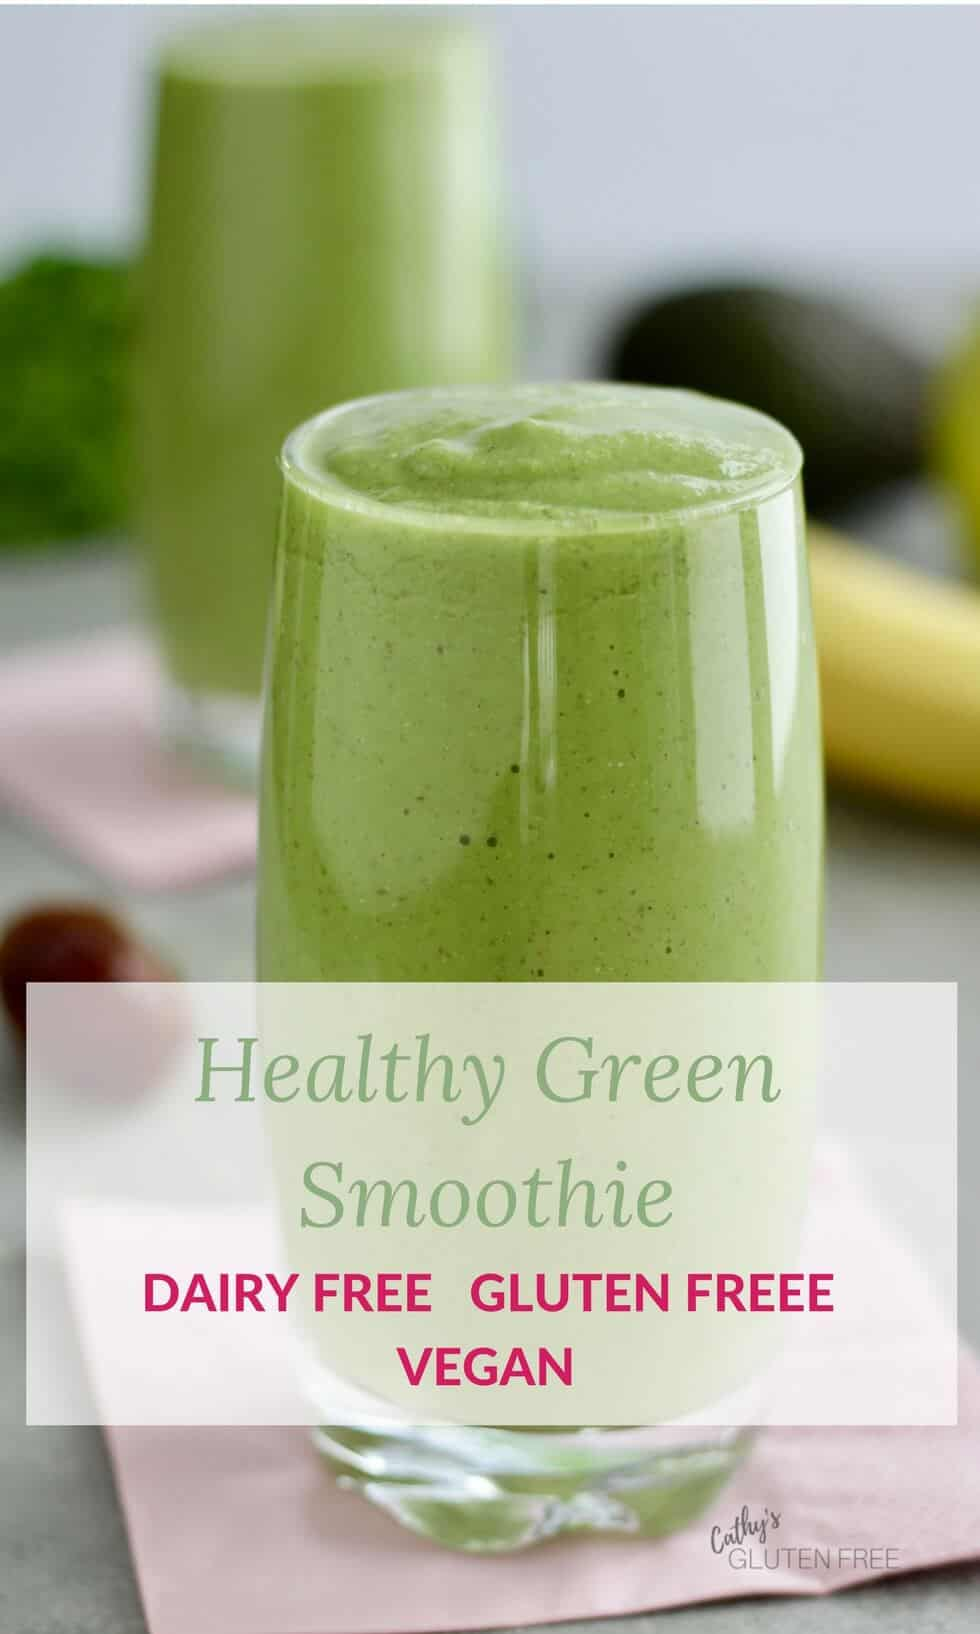 Delicious Healthy Green Smoothie with banana, avocado, apple, and hemp seeds